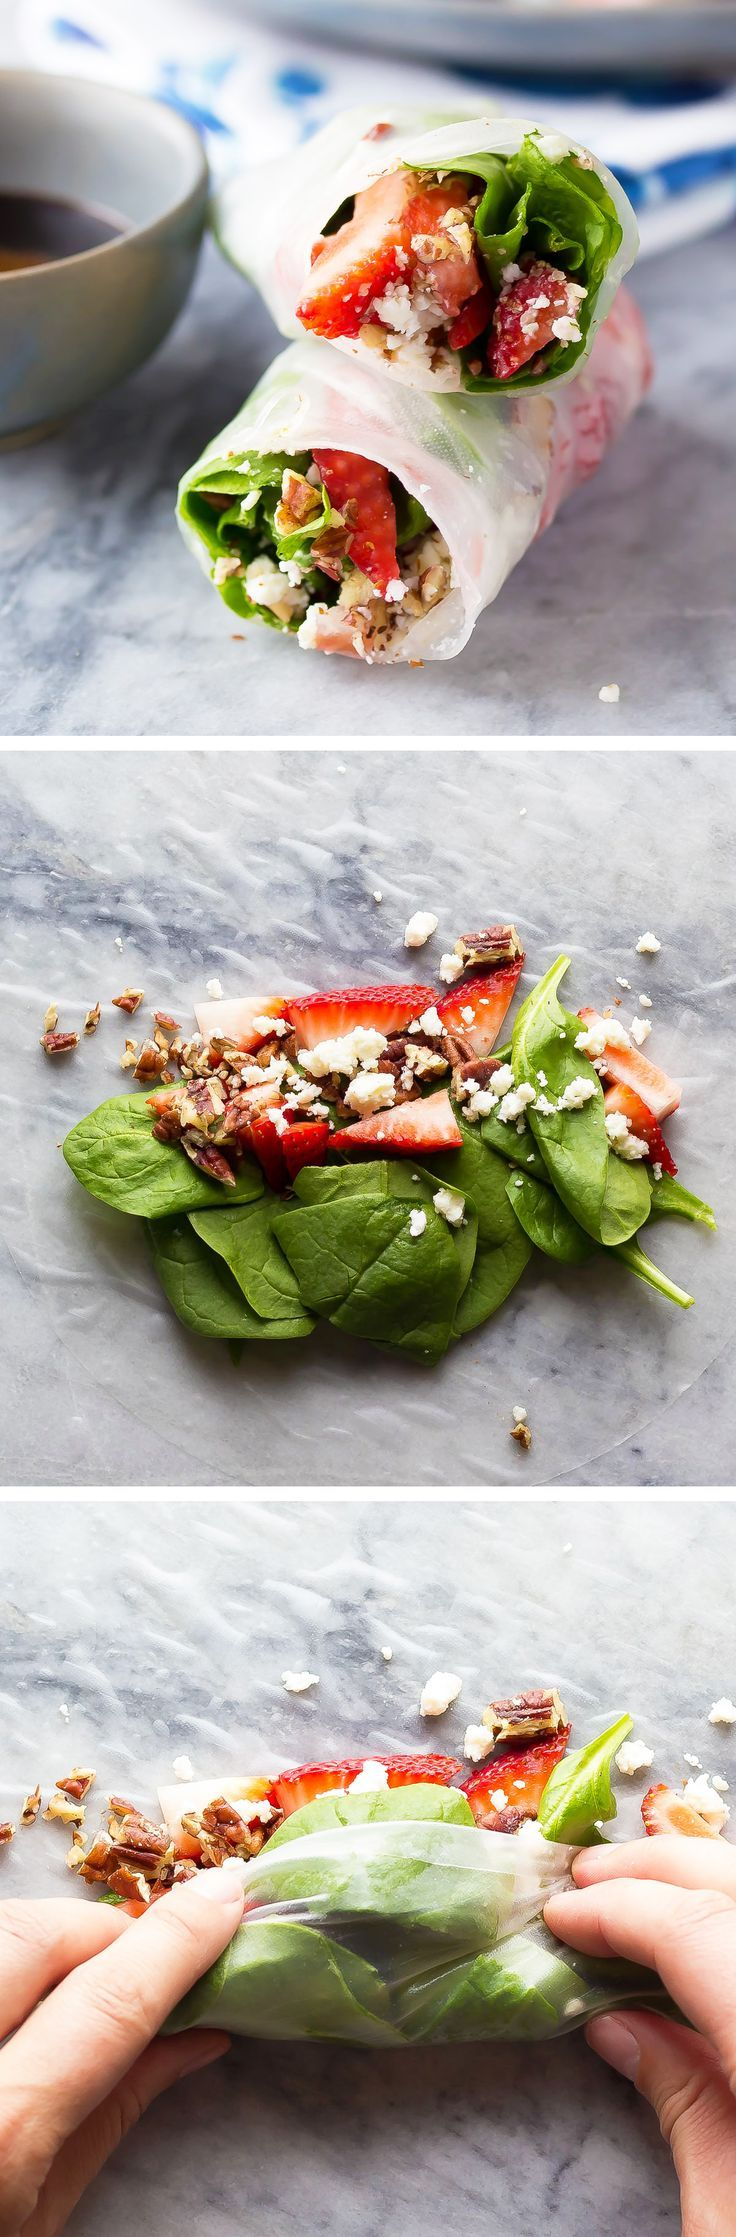 Strawberry Spinach Salad Rolls: 90 calories each, only 6-ingredients and 10 minutes to make, and a video to show you how easy they are to roll!!